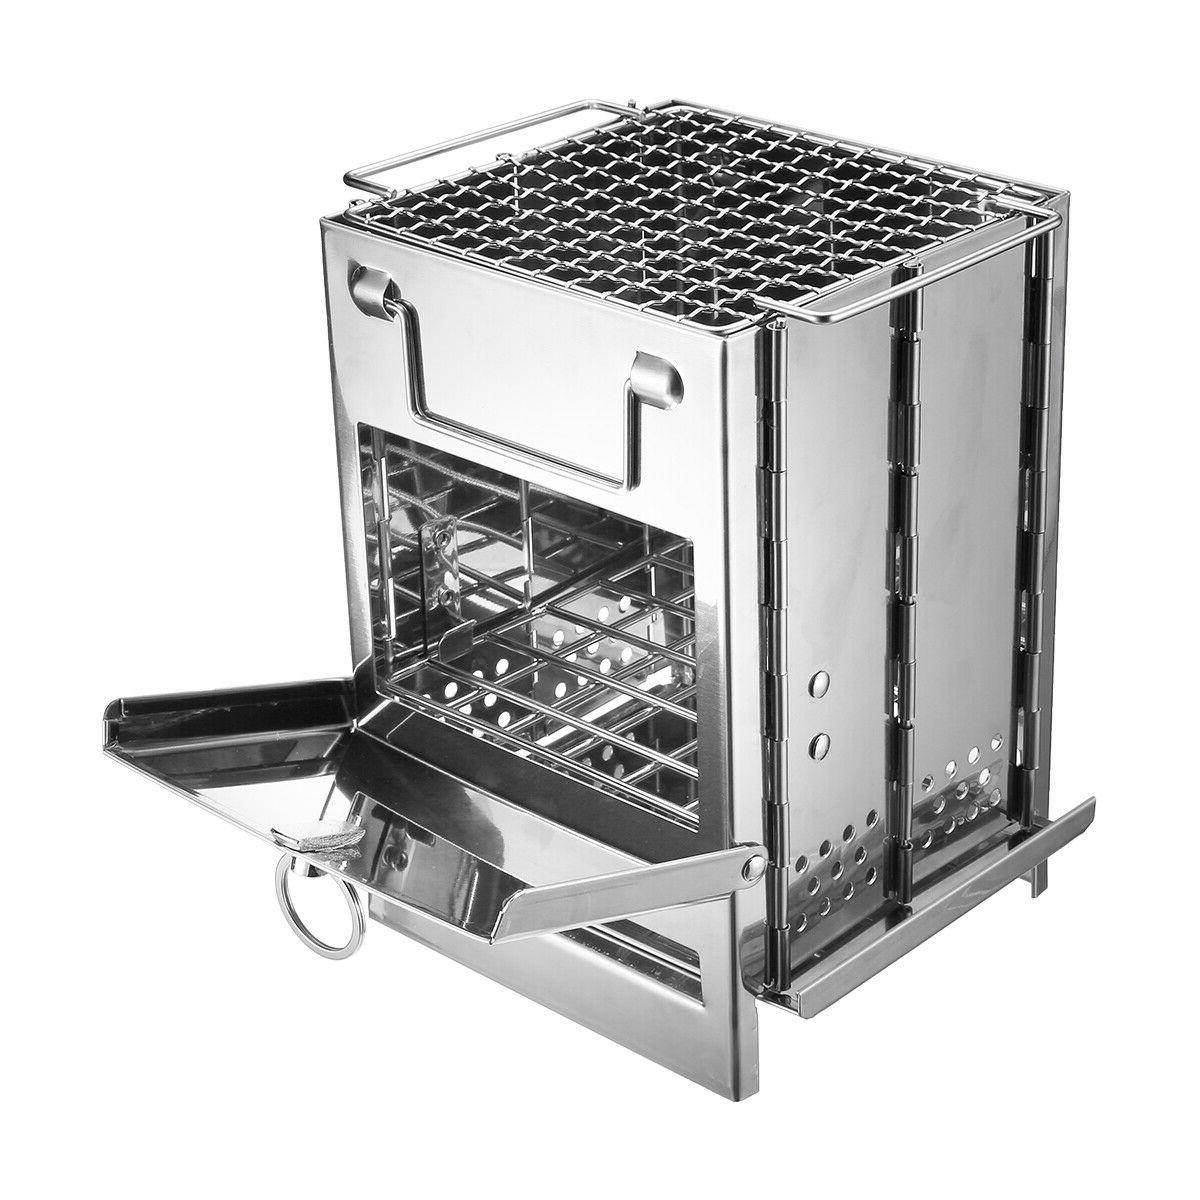 Portable Stove Outdoor Stainless Steel